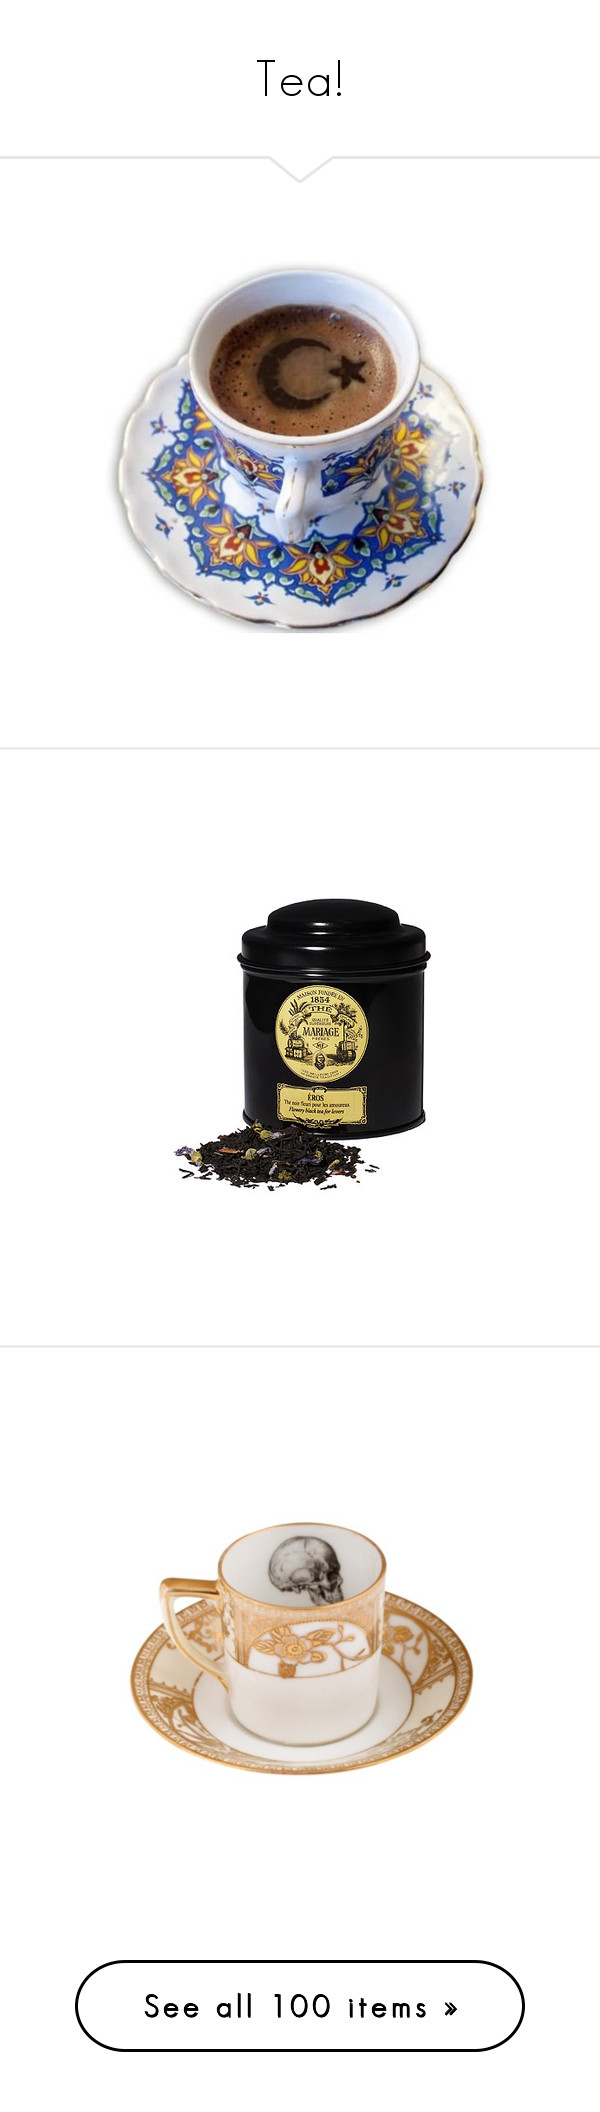 """""""Tea!"""" by morbid-octobur ❤ liked on Polyvore featuring coffee, fillers, food, drinks, tea, phrase, quotes, saying, text and food and drink"""